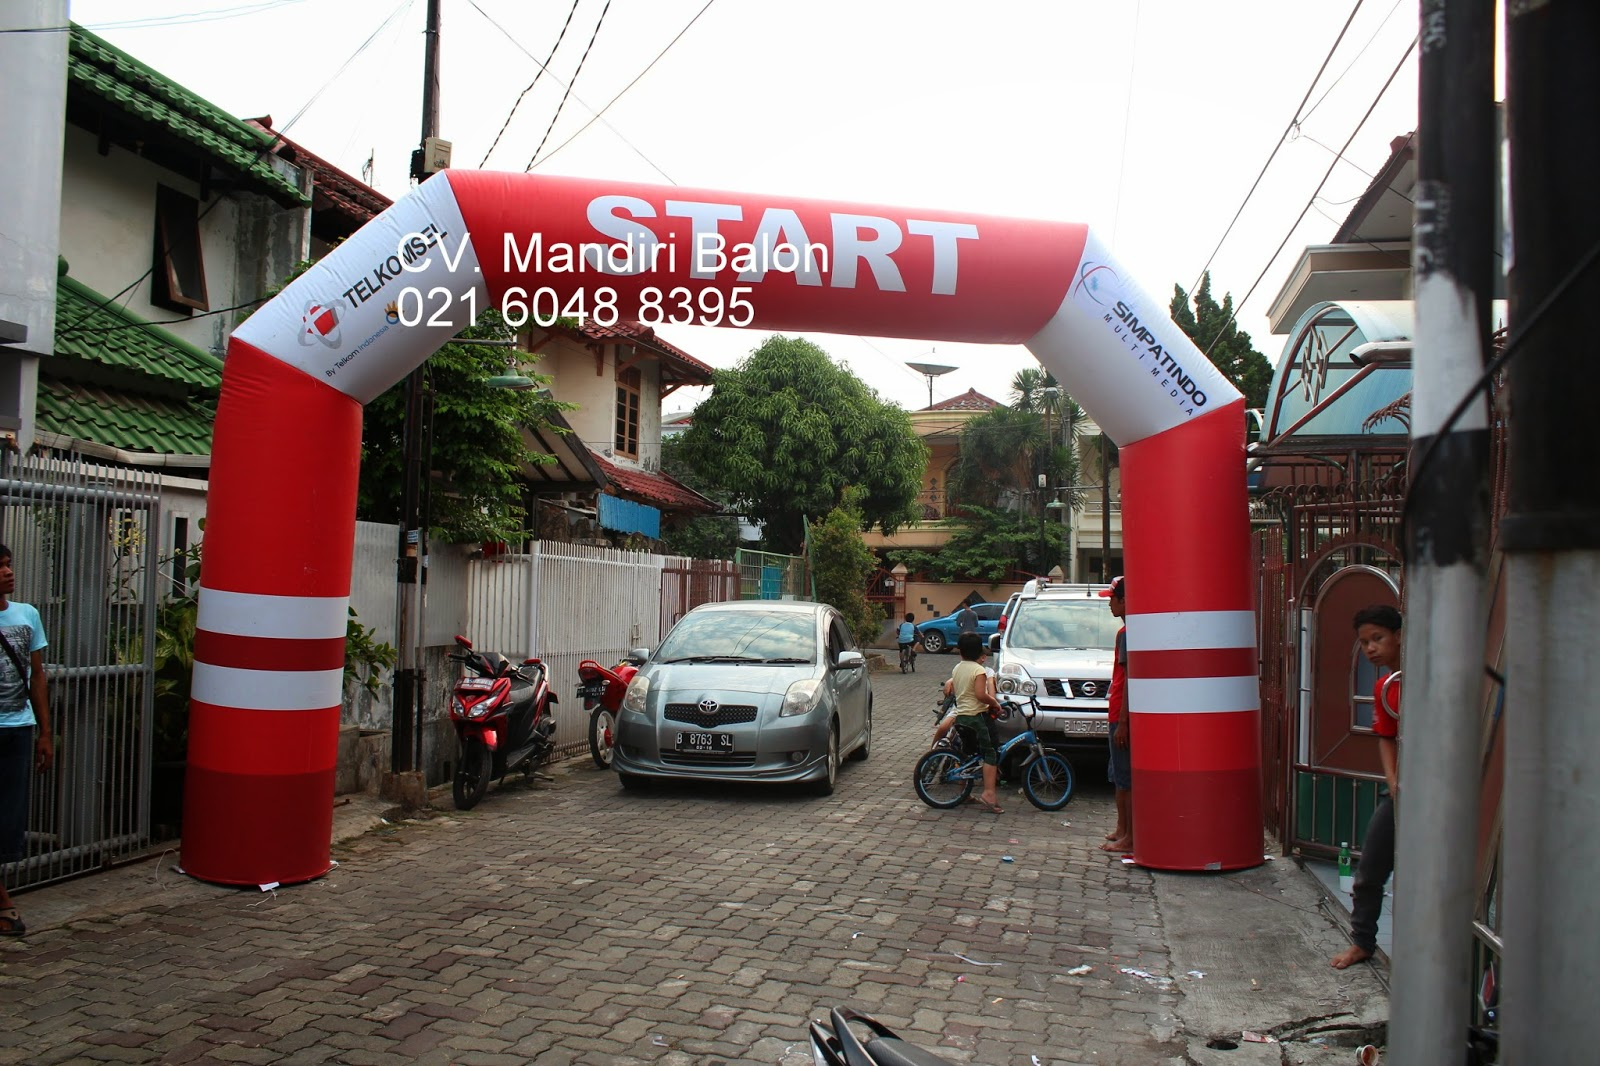 GATE BALON TELKOMSEL